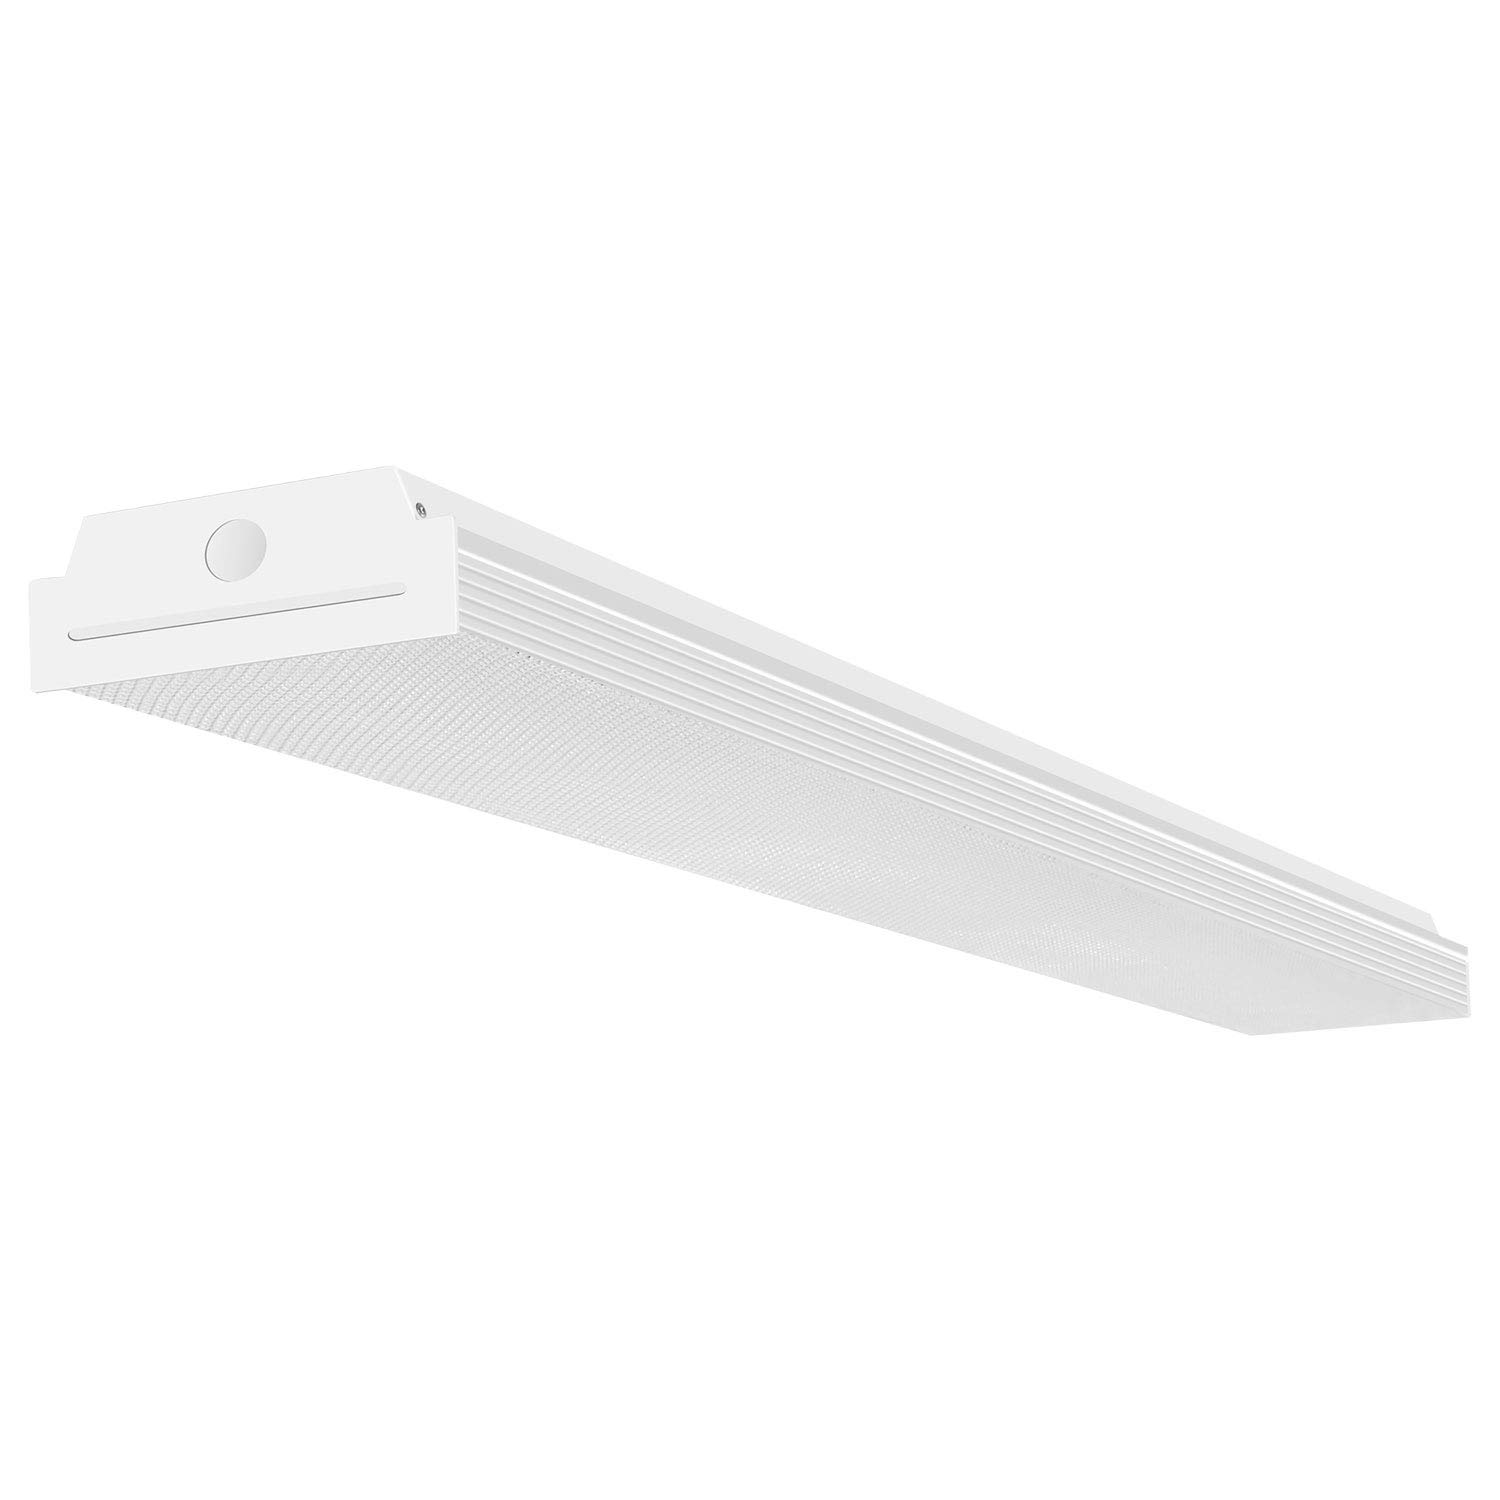 Fluorescent Light In Garage Not Working: FaithSail 4FT LED Wraparound 40W 4 Foot LED Shop Lights